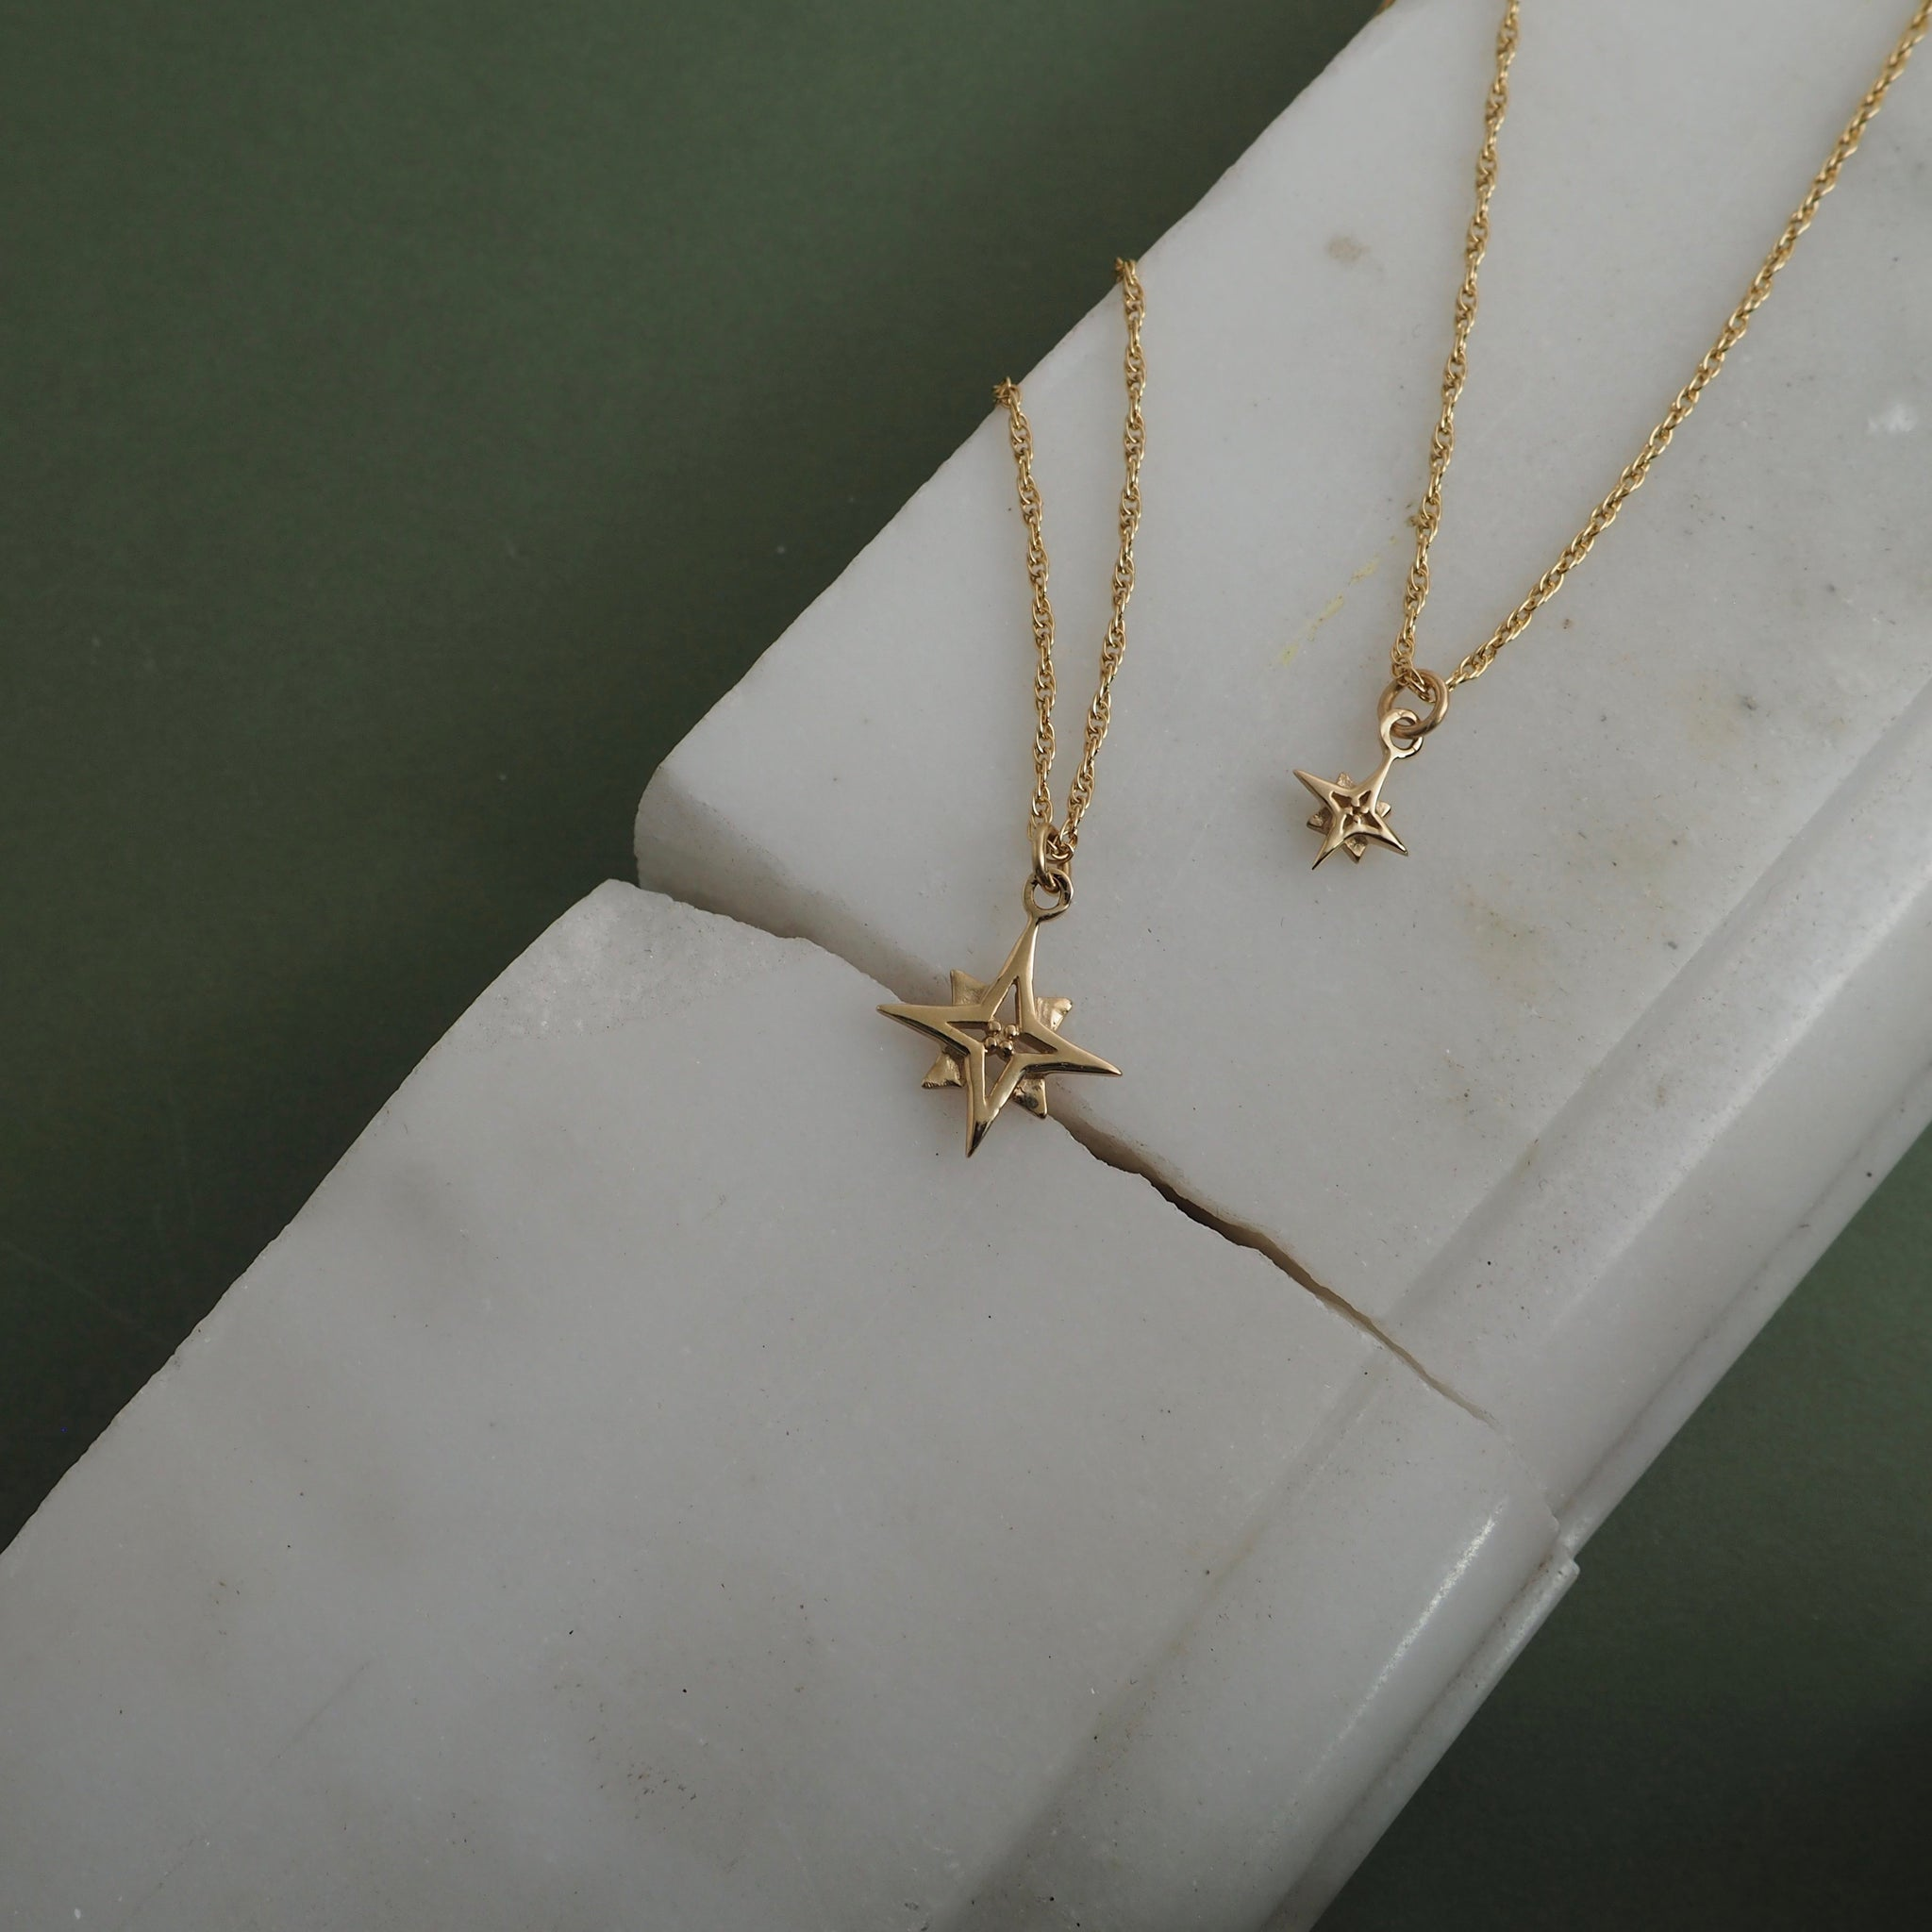 9ct Gold Compass Star Necklace by Yasmin Everley